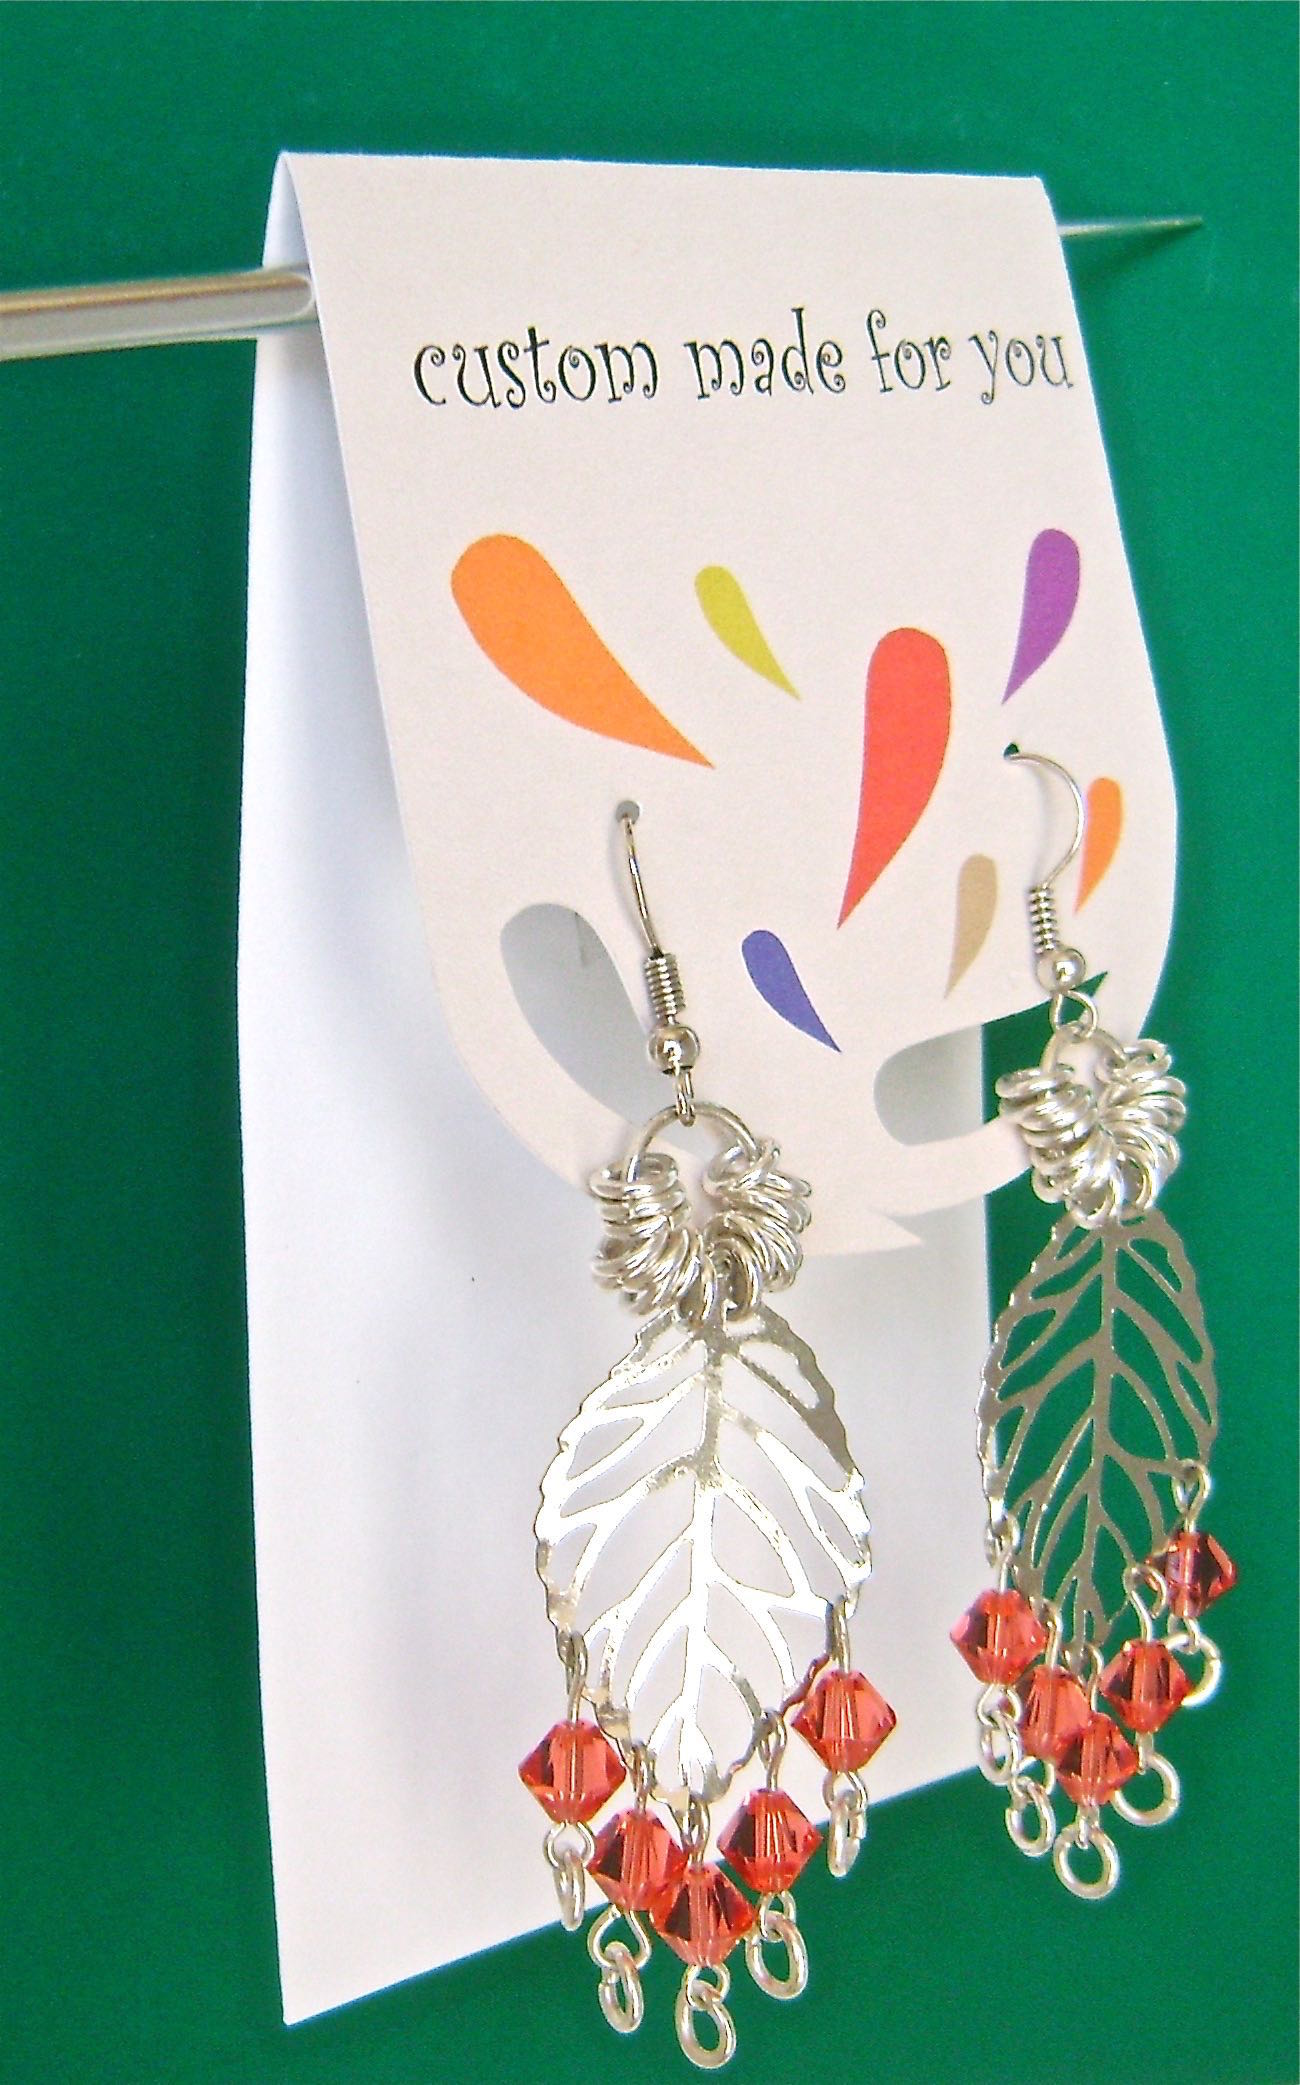 step 3 - Fold the printed flap with a sharp crease. Insert the earring wires in the holes and secure them on the back with earring wire clutches. At craft boutiques, earring cards are an easy way to display your work.  Just hang the cards on a stiff wire.